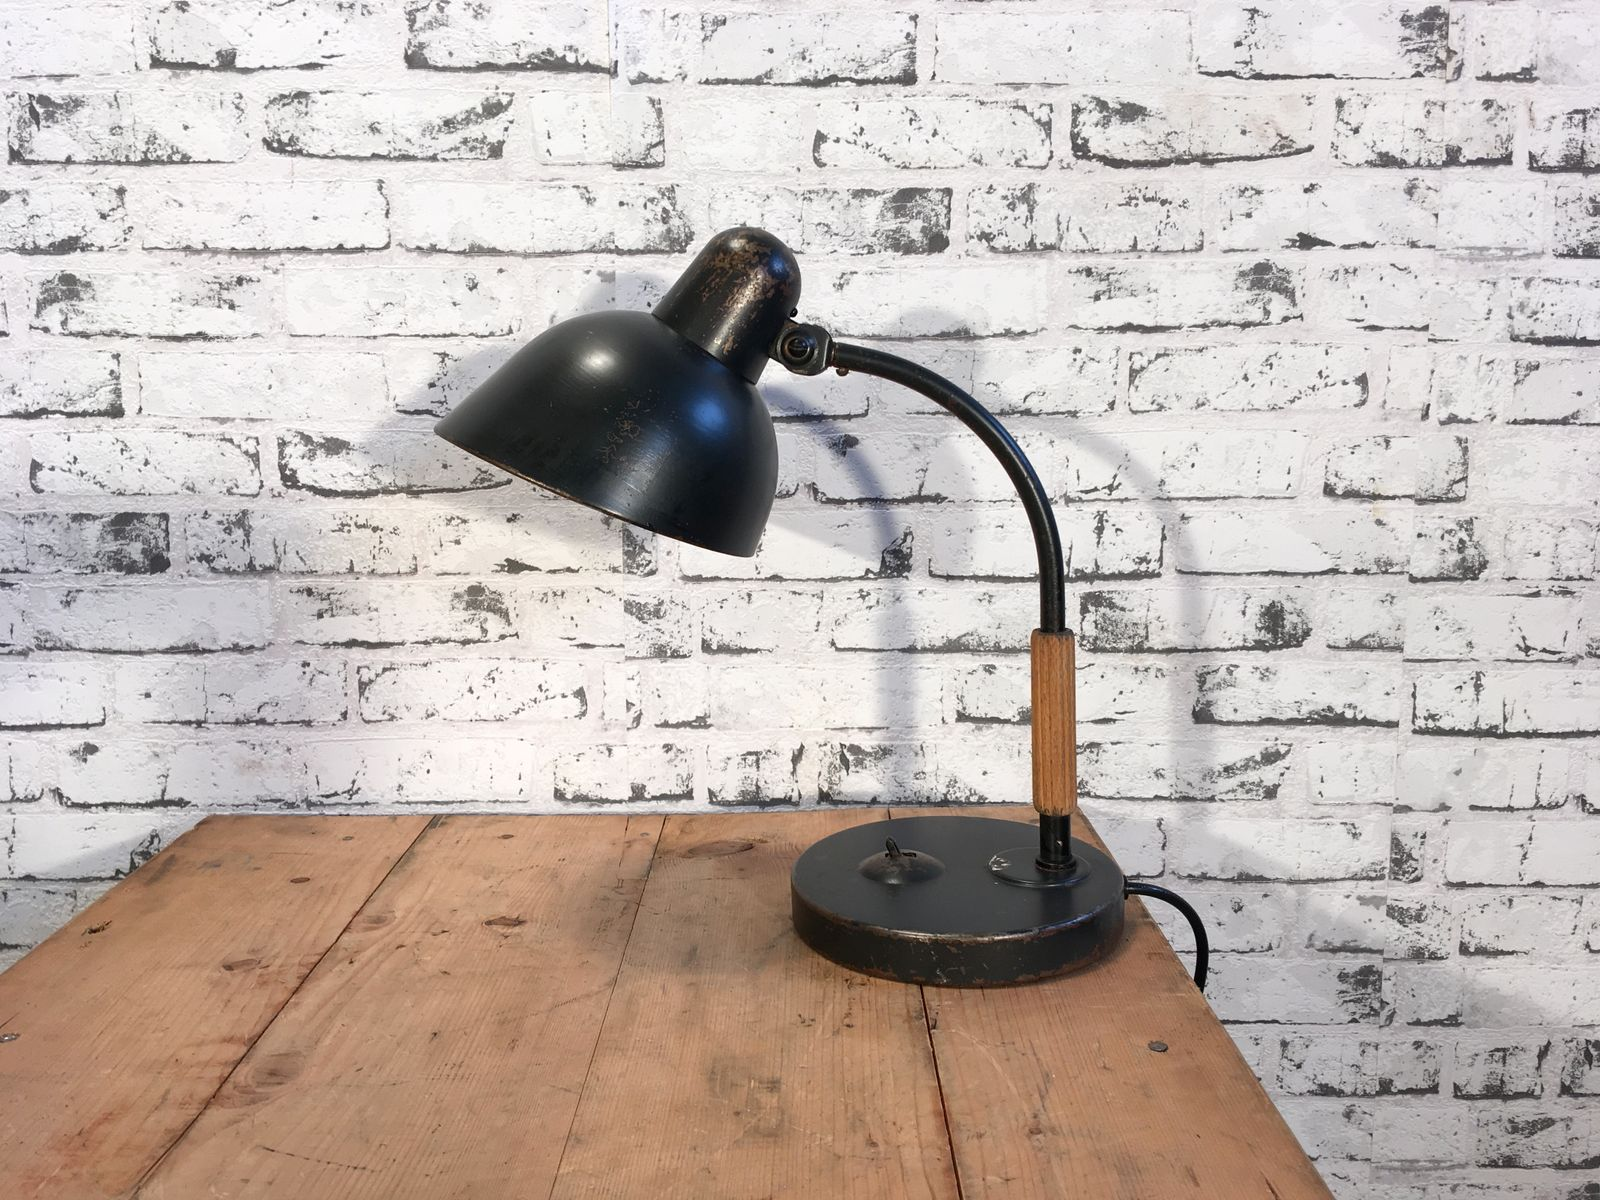 Vintage Industrial Table Lamp From Siemens 1930s For Sale At Pamono